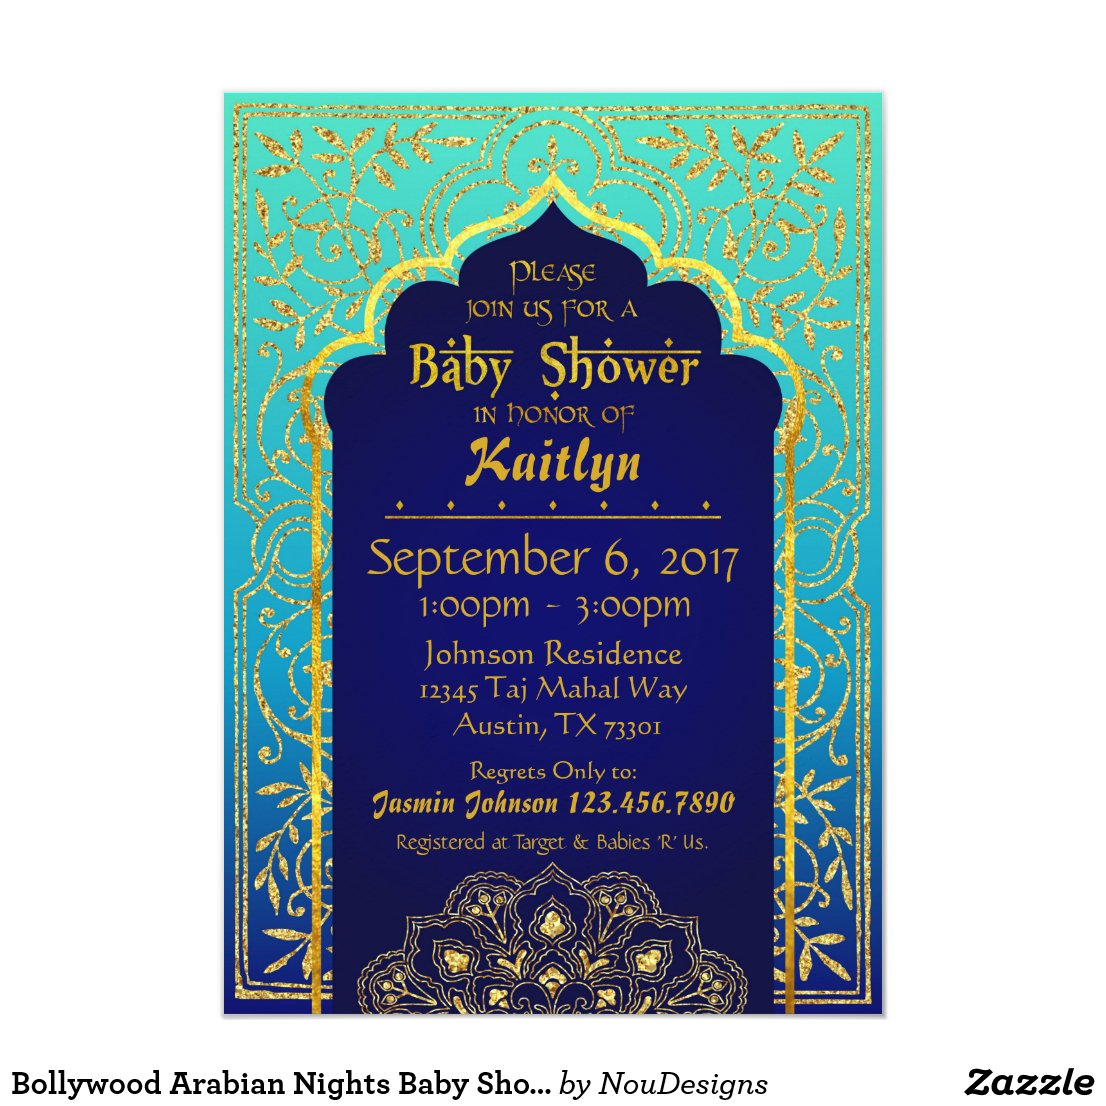 Bollywood Arabian Nights Baby Shower Card